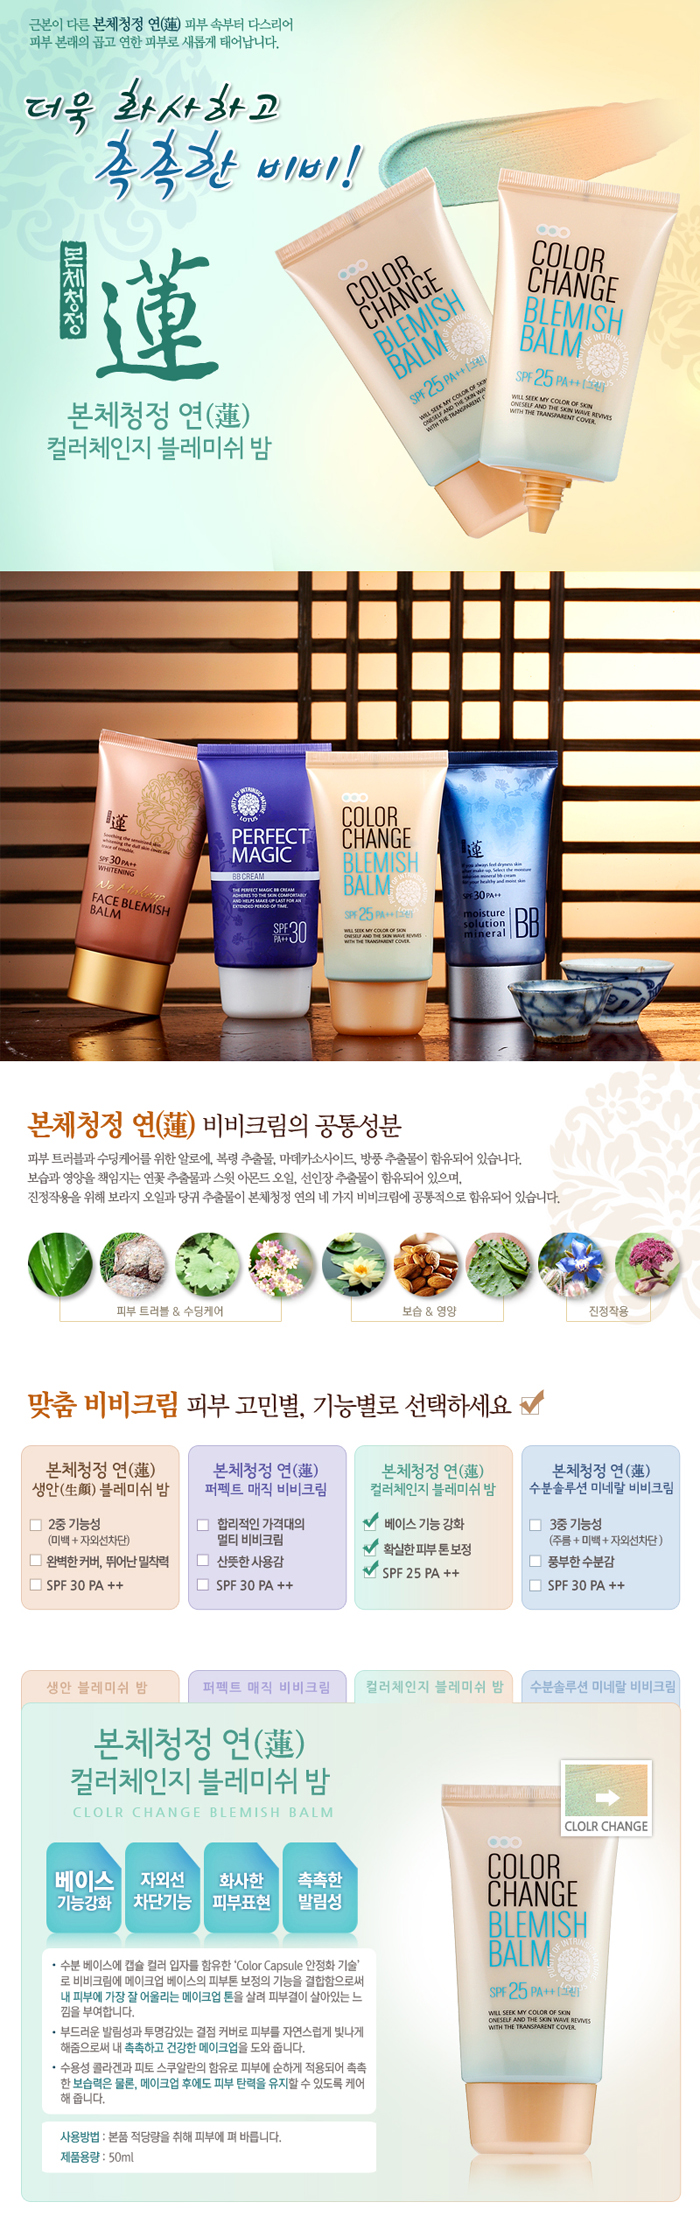 http://www.click2buygroup.com/images/product/Welcos-color-change-blemish-balm-spf25-pa-2.jpg